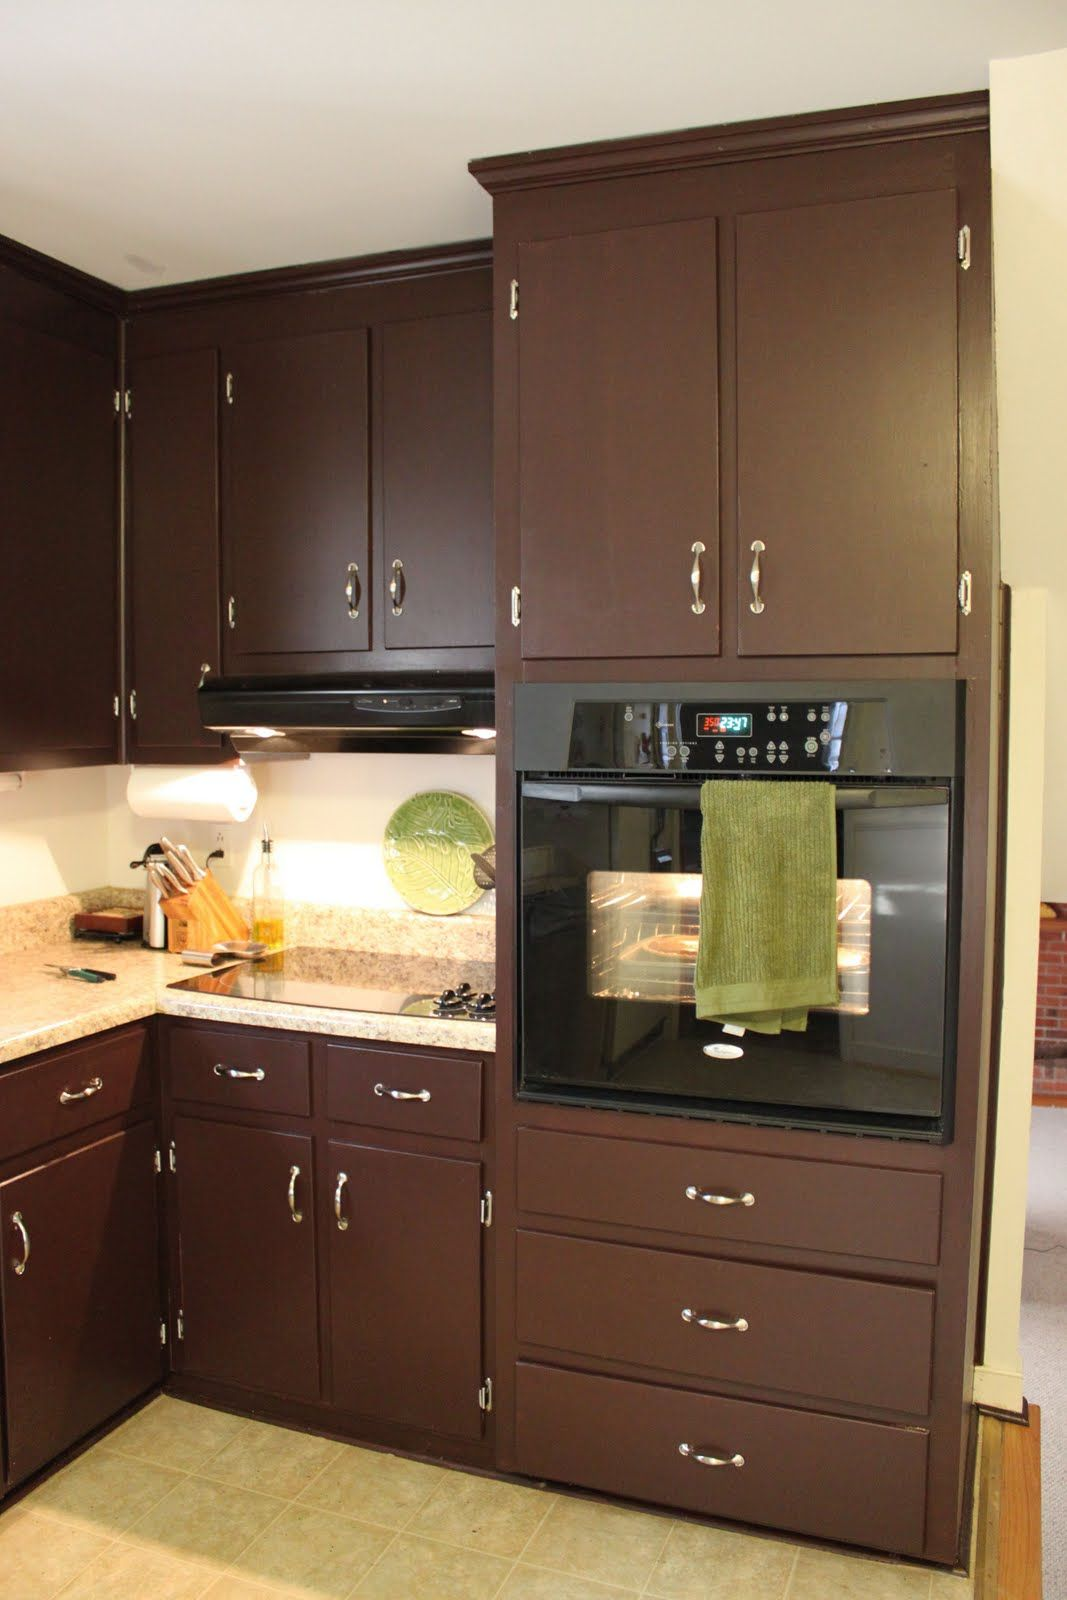 Brown Painted Kitchen Cabinets Silver Hardware Looks Like Our Floor In This Photo